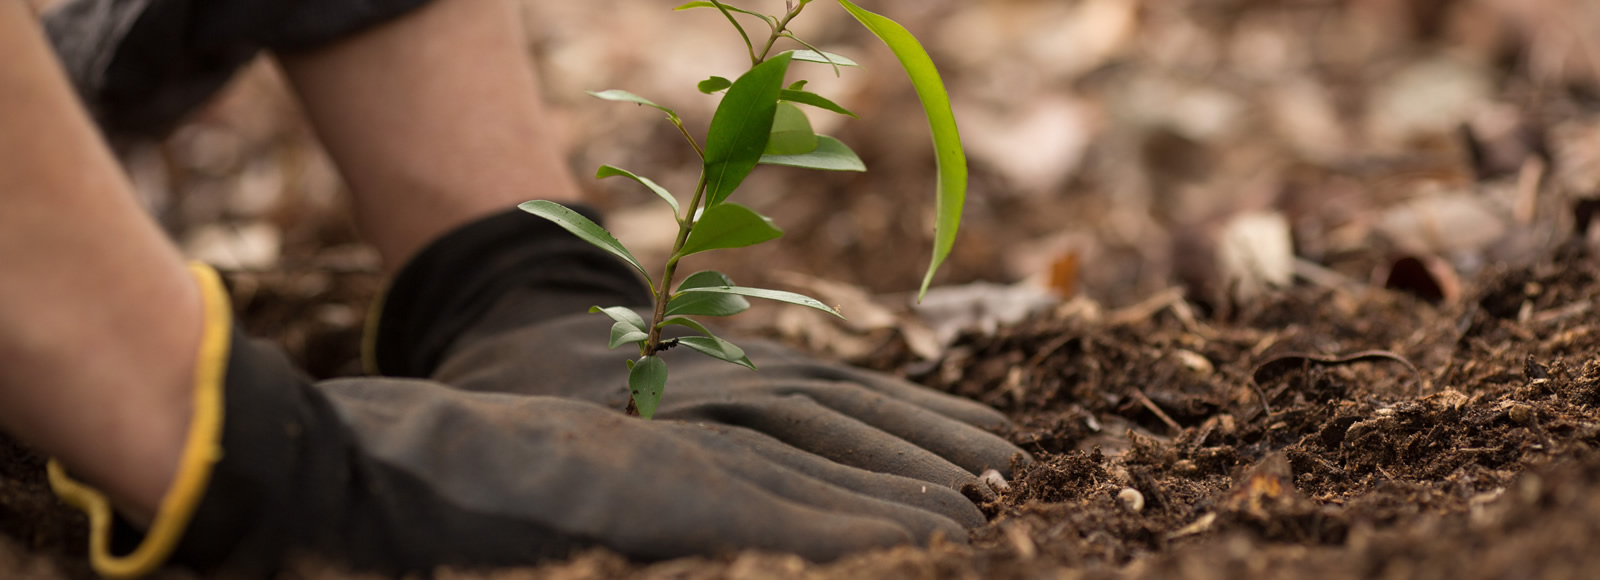 Planting a tree - sustainability and responsibility